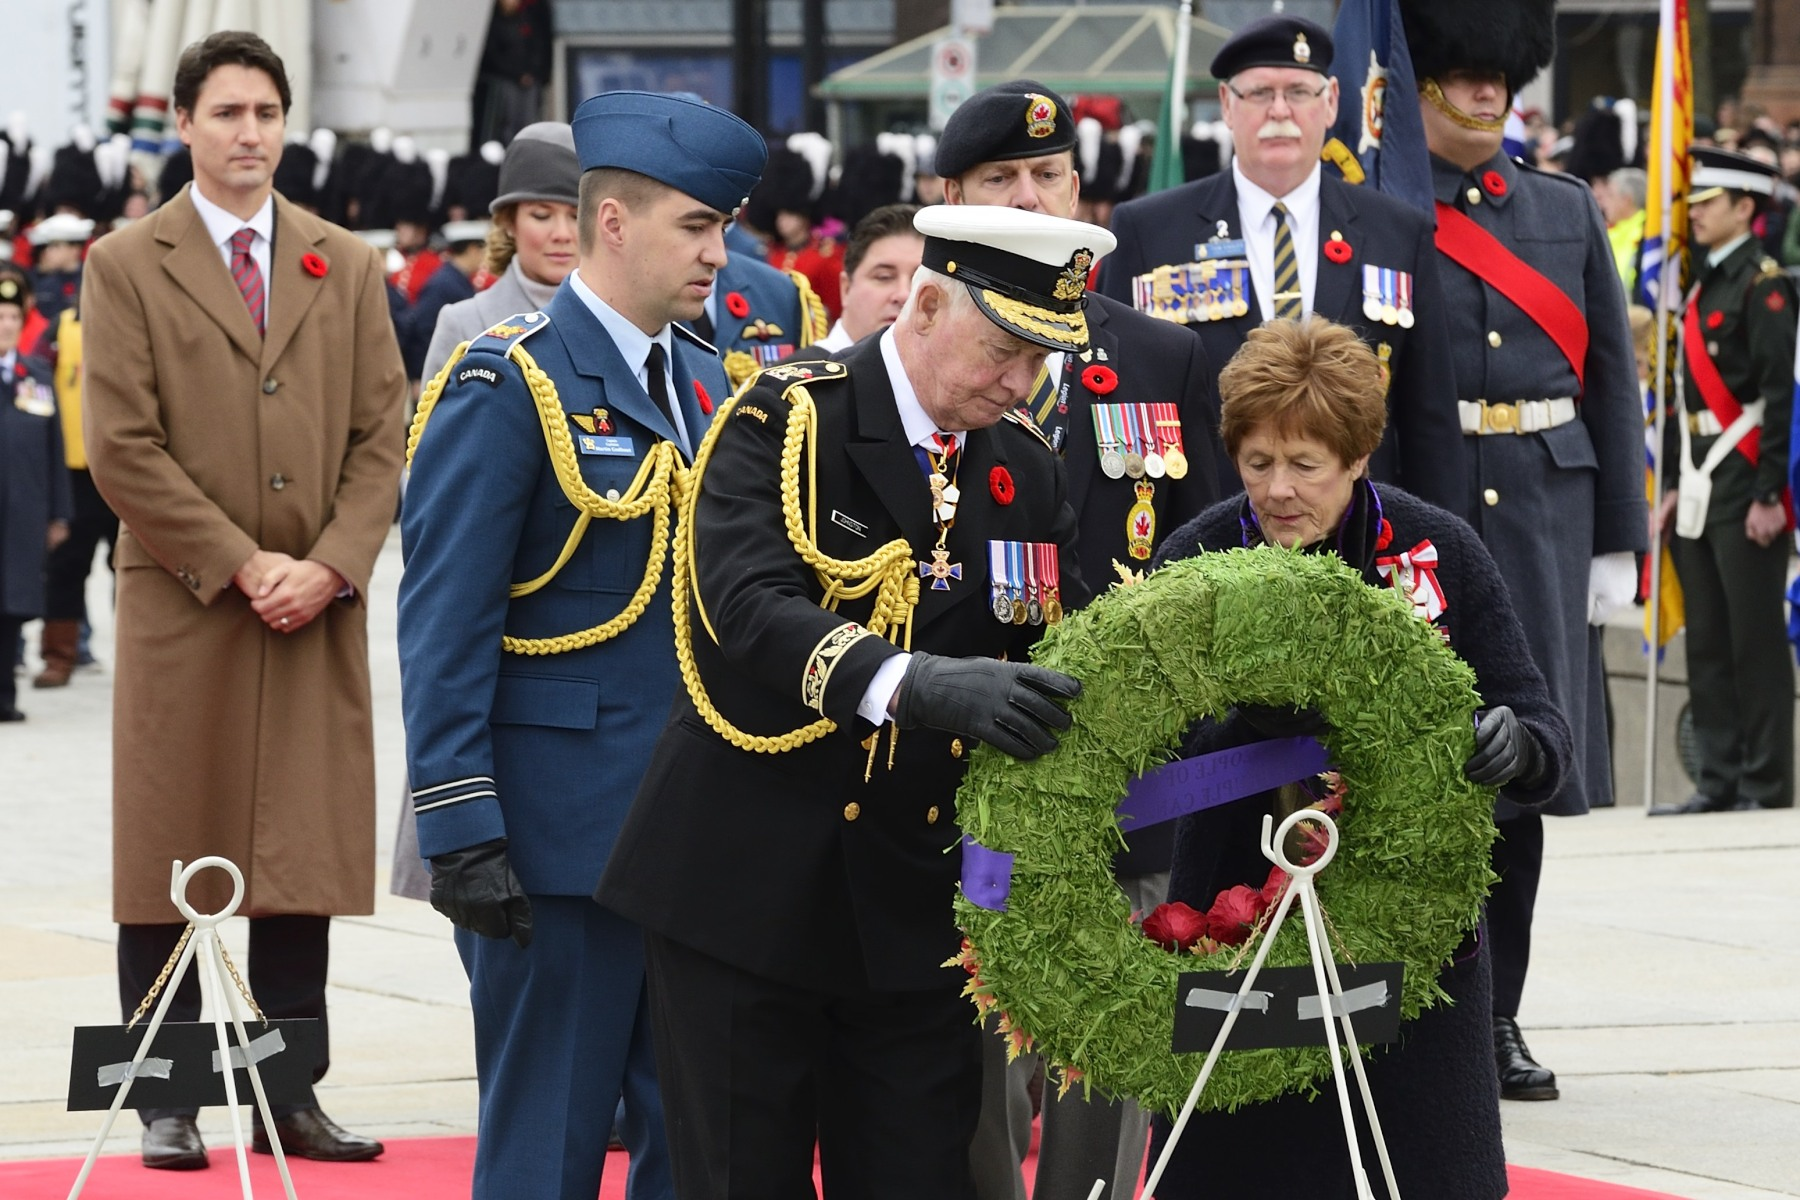 Their Excellencies laid a wreath on behalf of the people of Canada.